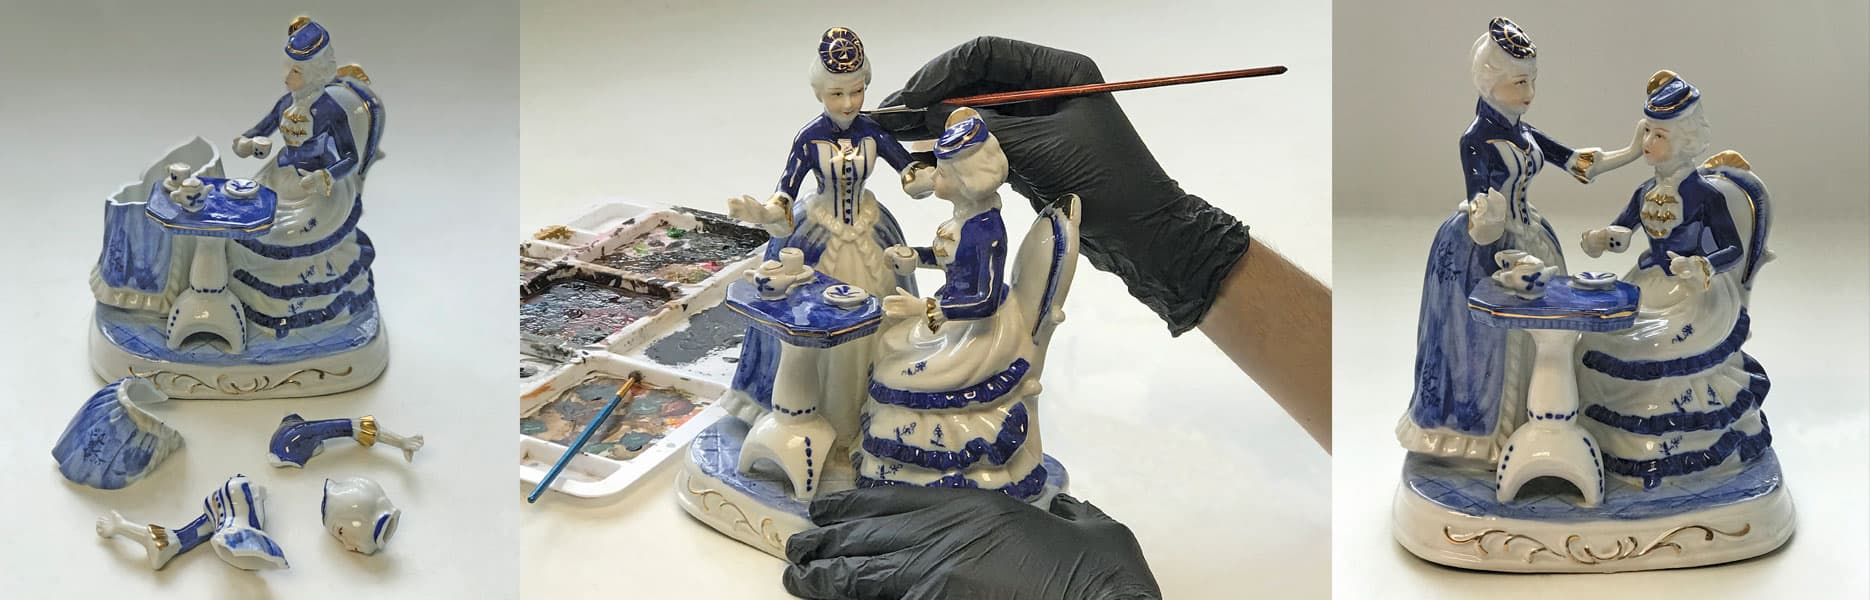 Ceramic Ladies Repair